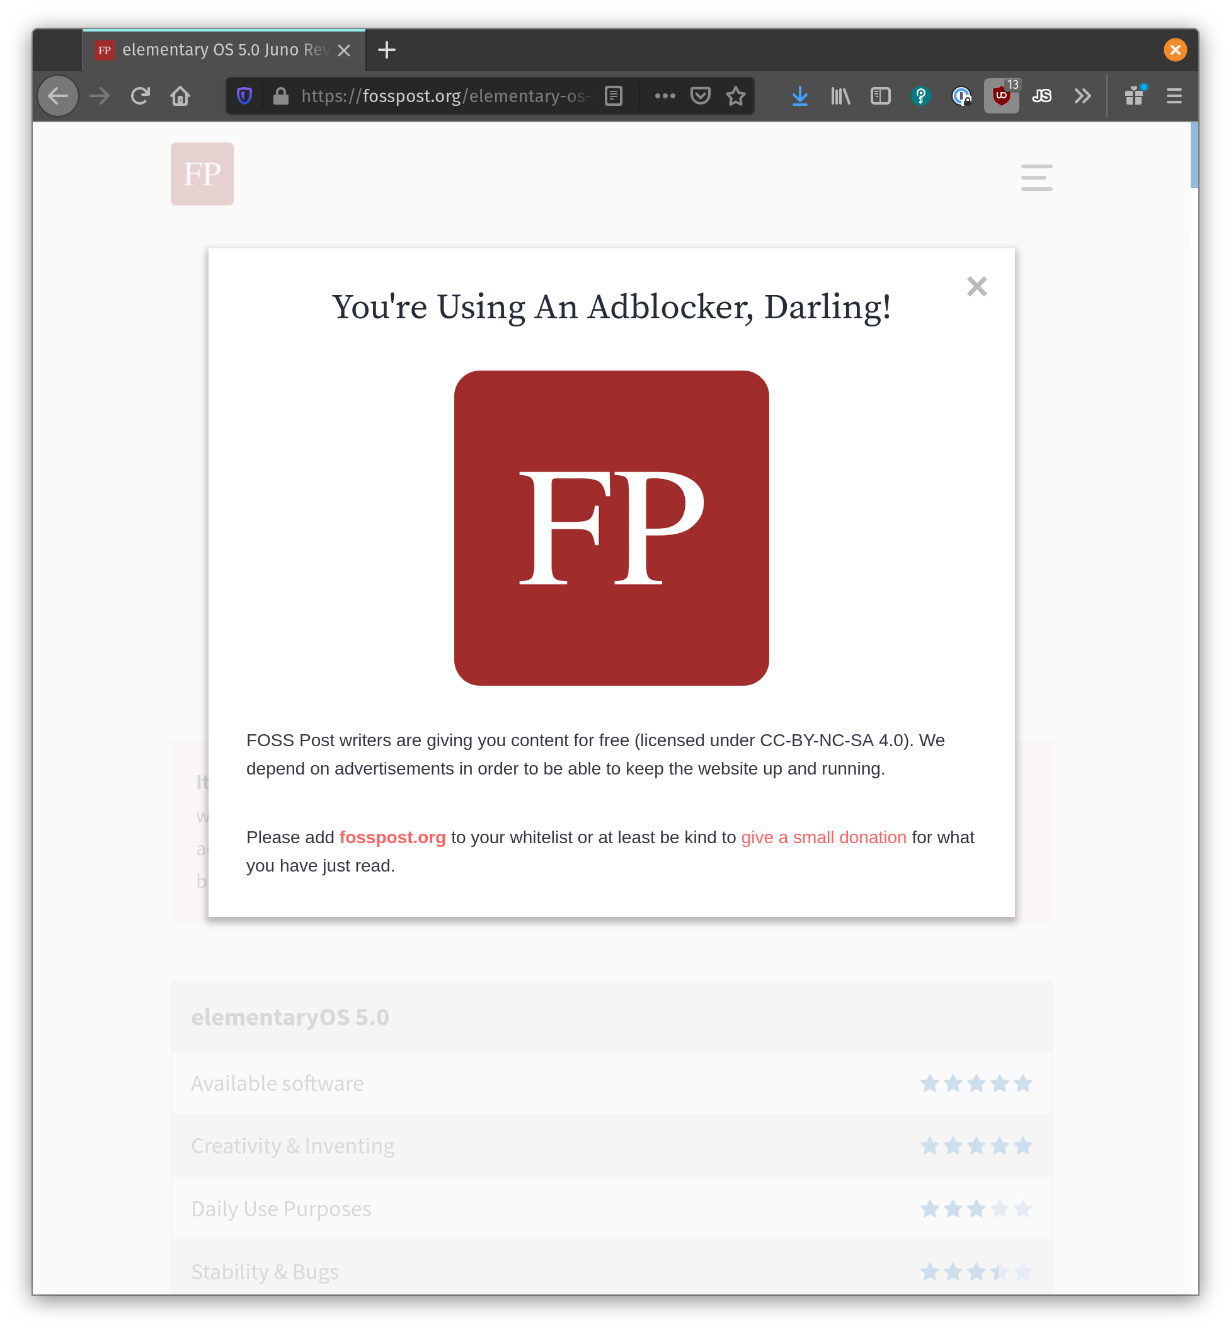 """FOSS Post web site: """"<br />You're Using An Adblocker, Darling!<br /><br />Free and open source software<br /><br />FOSS Post writers are giving you content for free (licensed under CC-BY-NC-SA 4.0). We depend on advertisements in order to be able to keep the website up and running.<br /><br />Please add fosspost.org to your whitelist or at least be kind to give a small donation for what you have just read."""""""